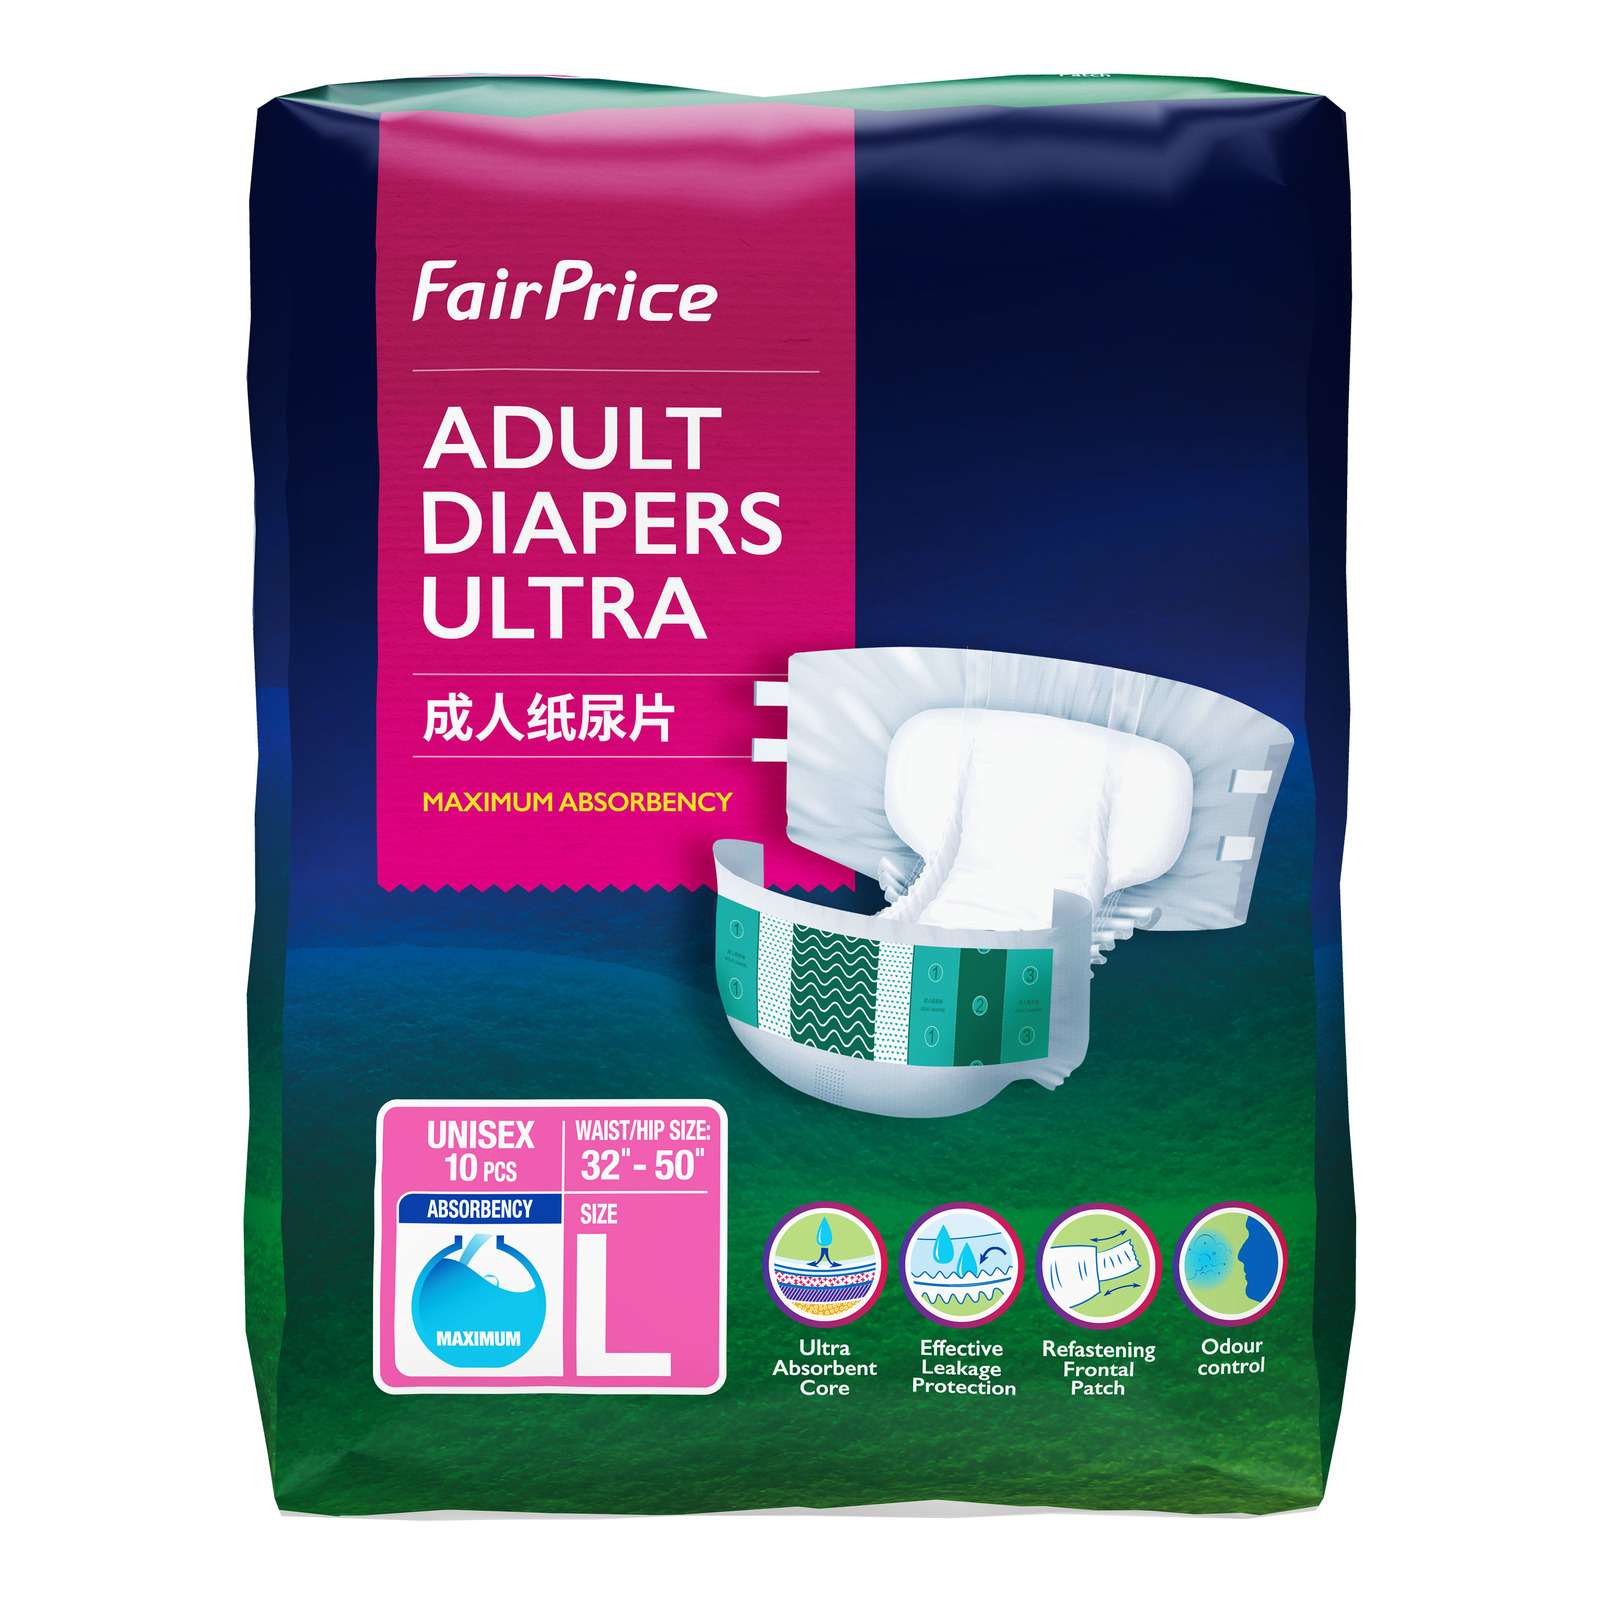 FairPrice Adult Diapers Ultra - L